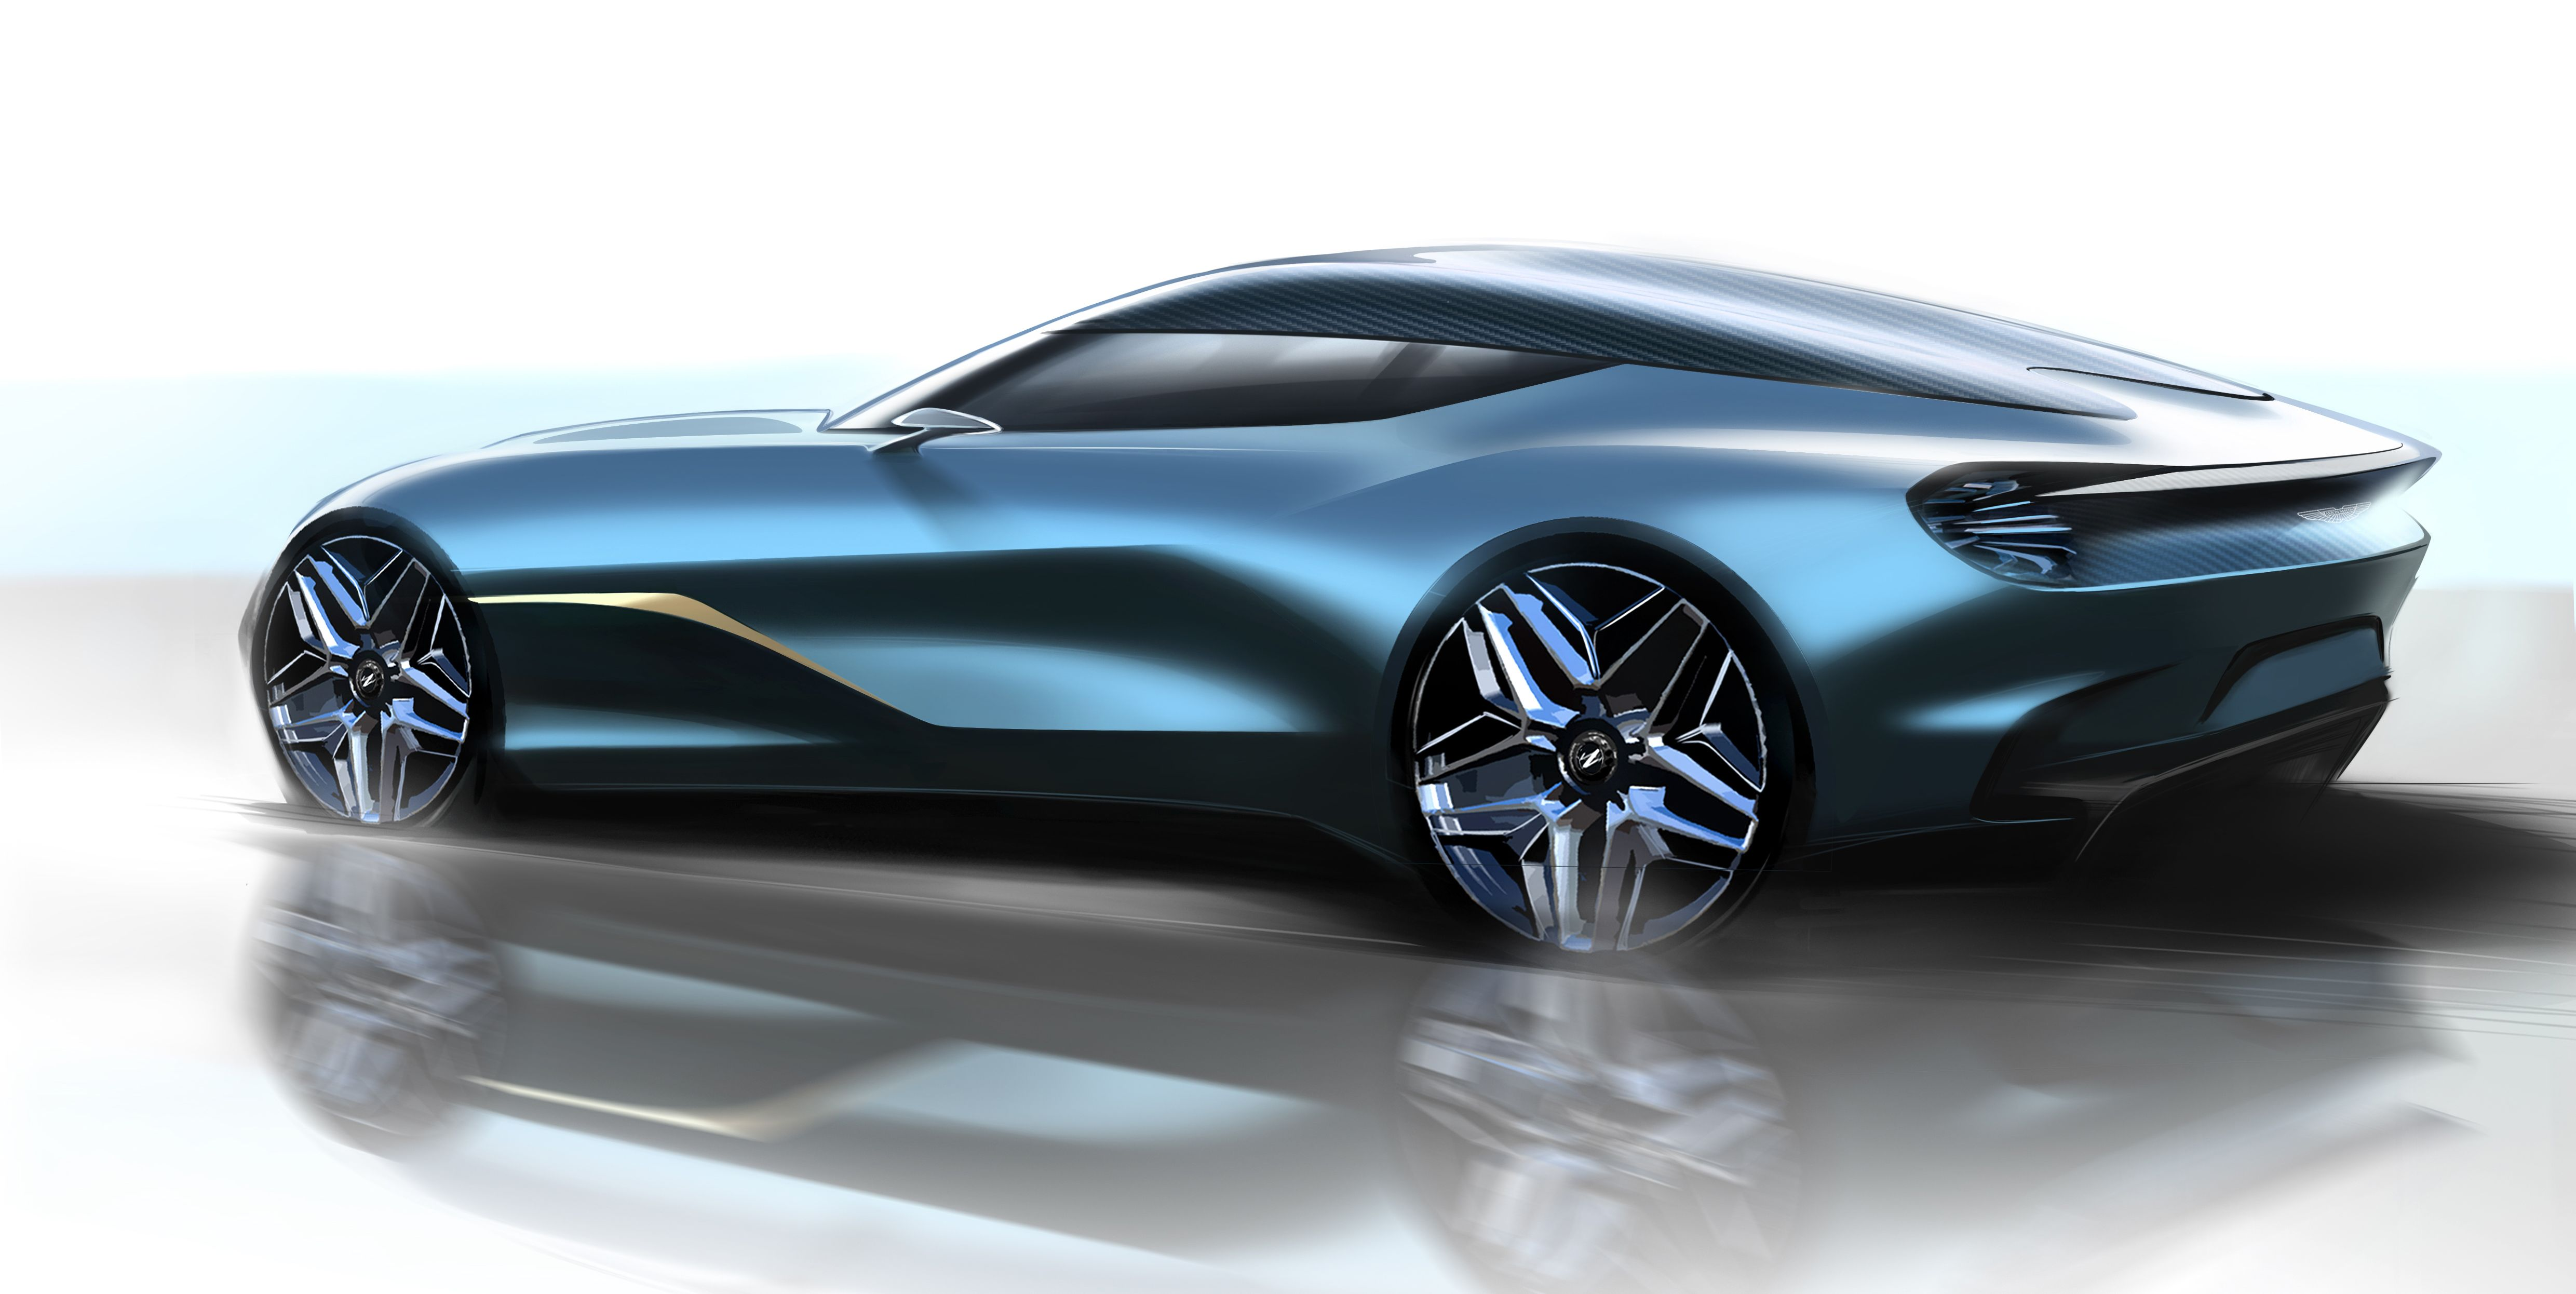 First Look at the Aston Martin DBS GT Zagato